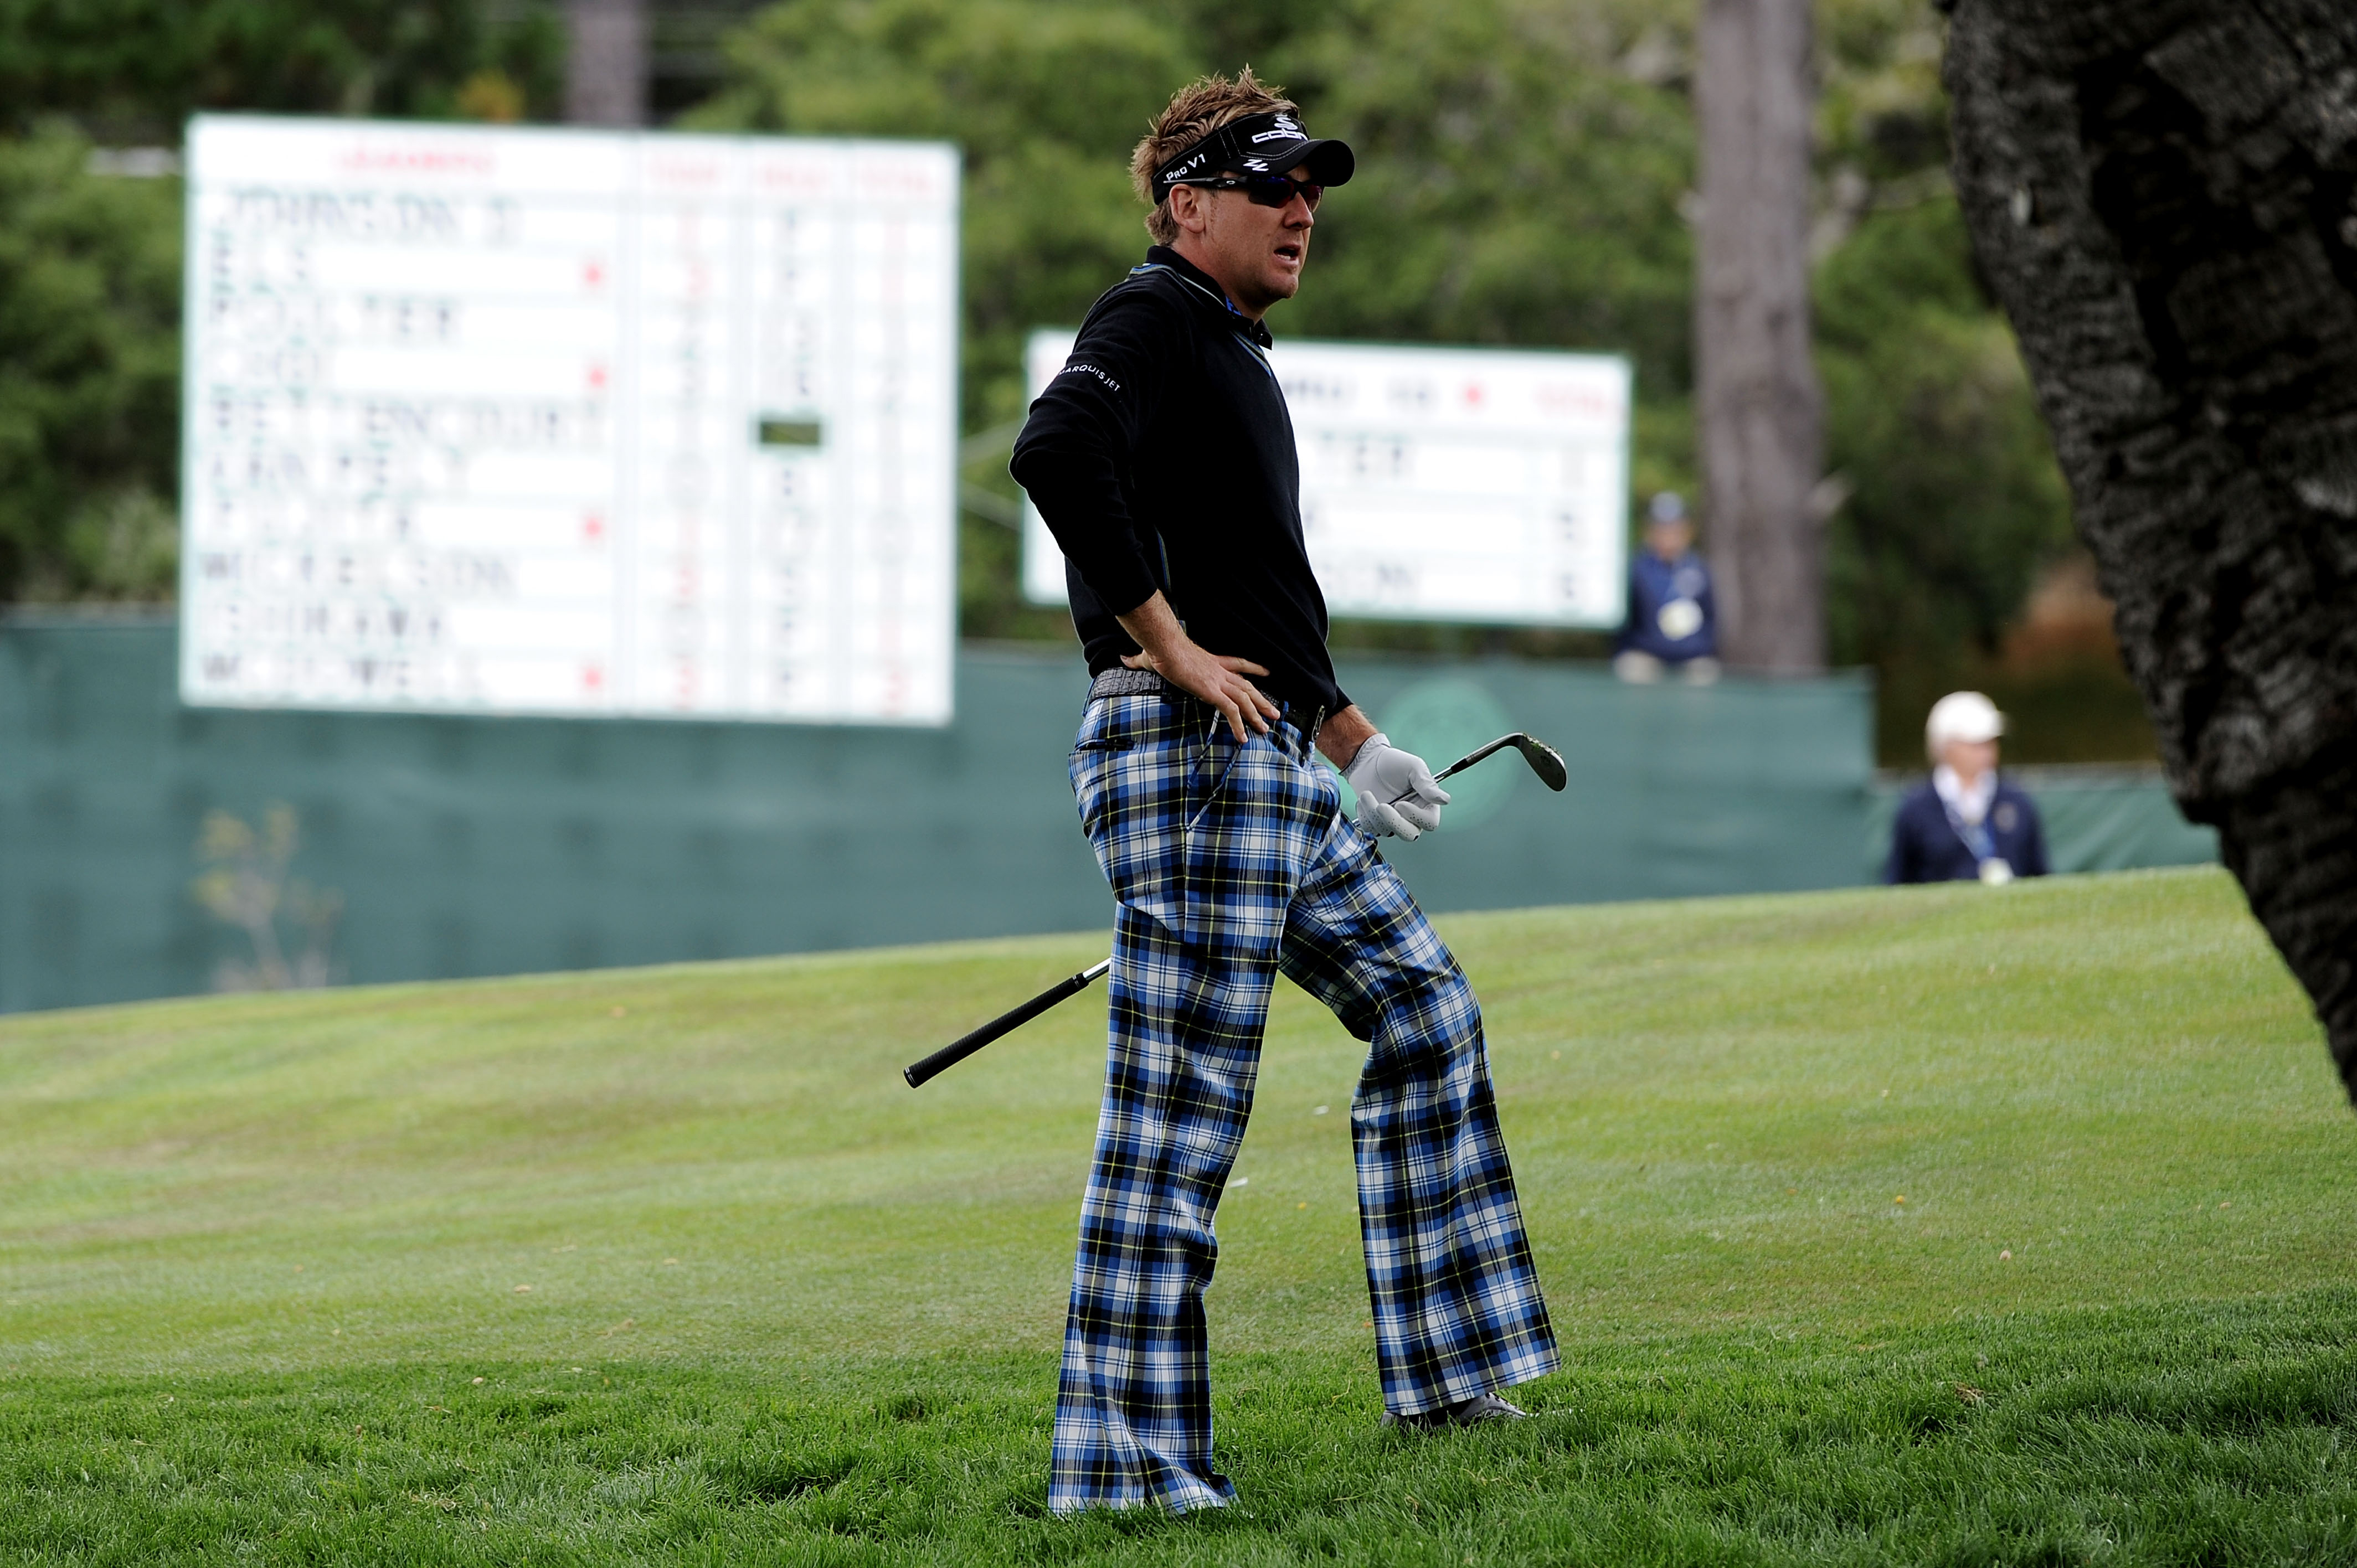 Ian Poulter reacts to his second chip at the par-5 14th hole Friday.